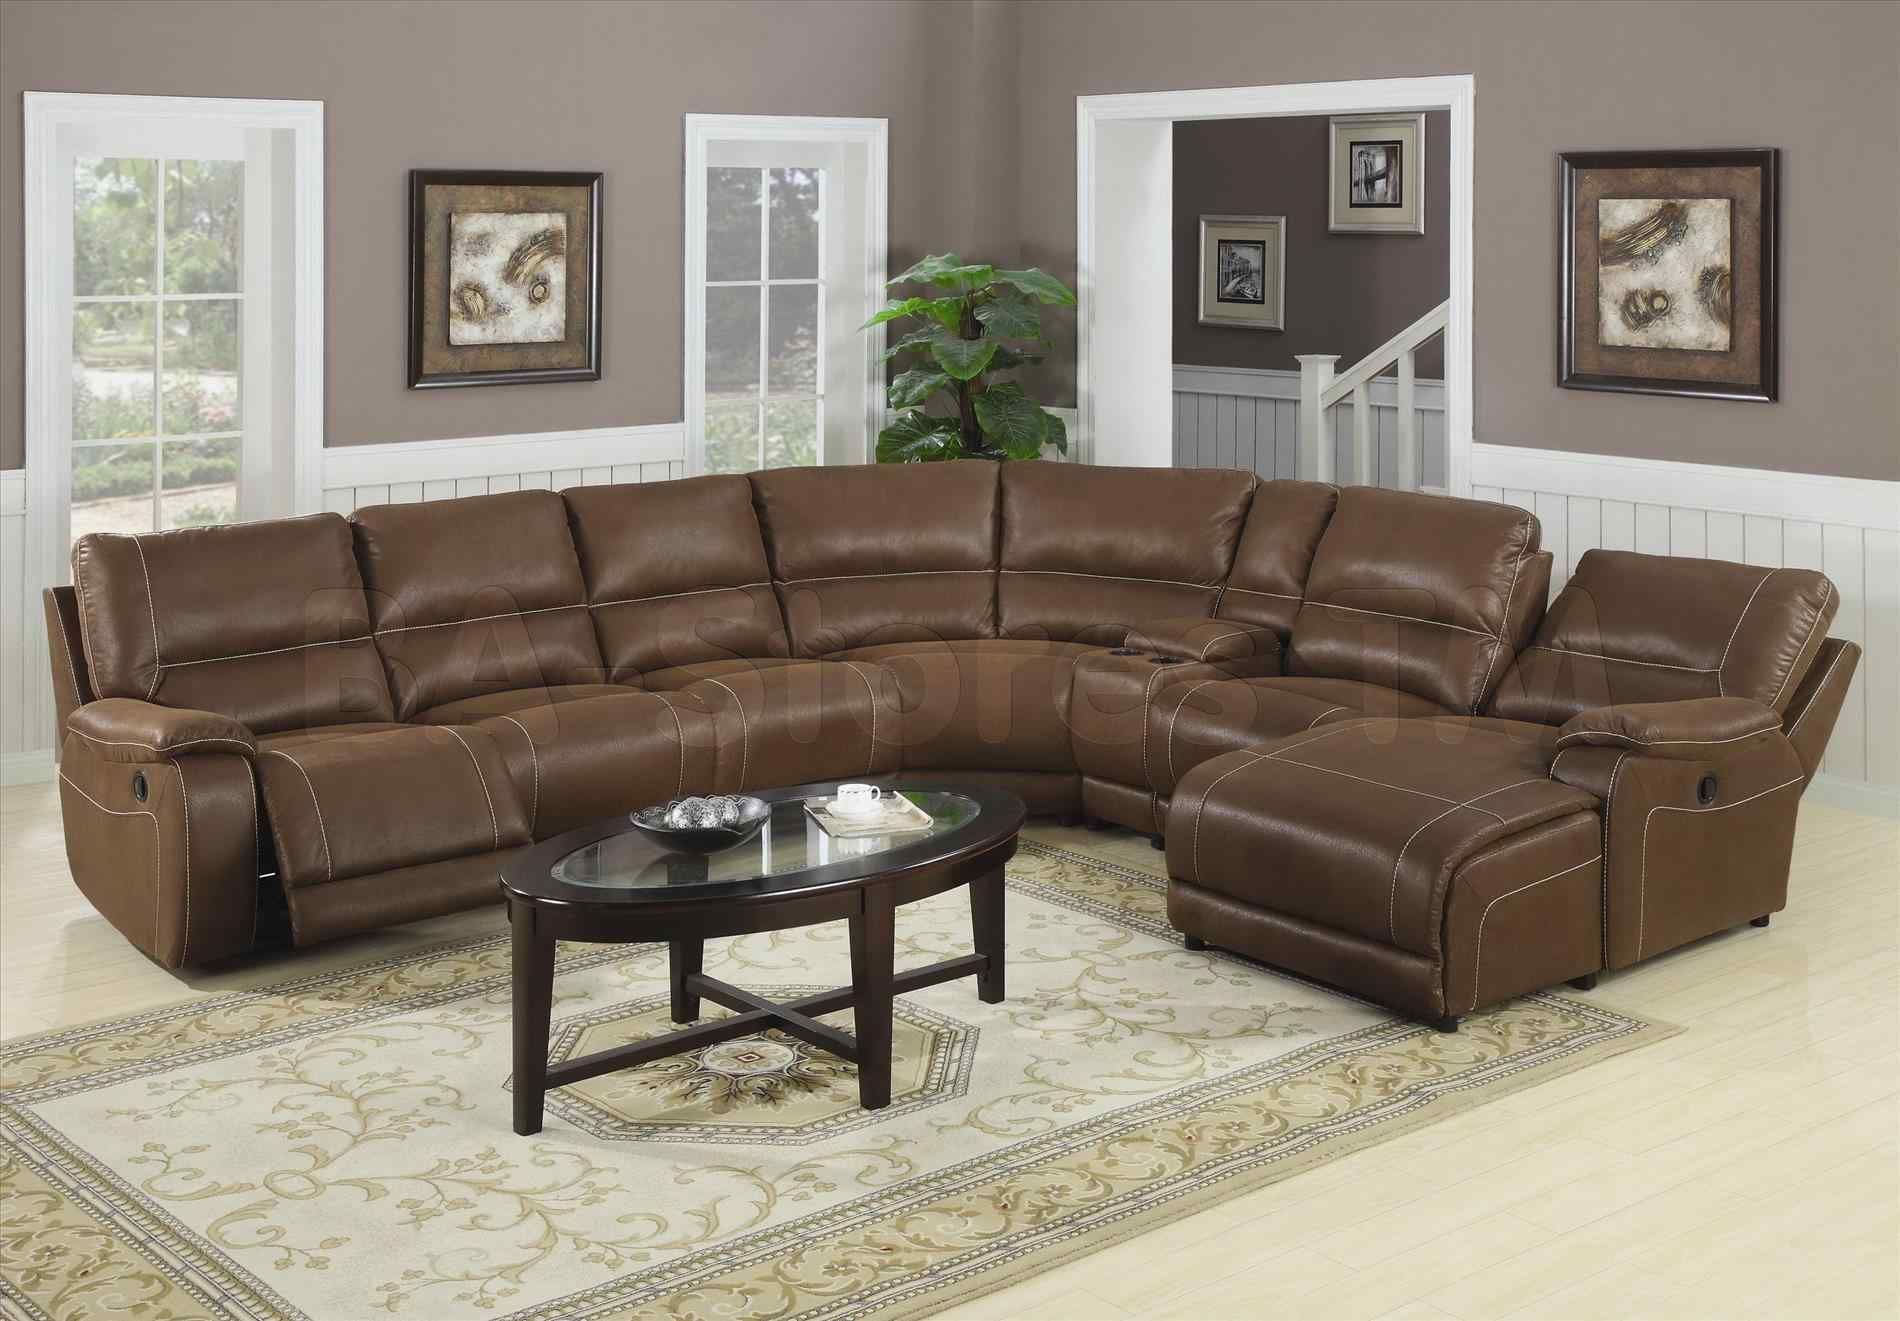 Inexpensive Sectional Sofas For Sale Red Black Corner Sofa Bed Olivia Furniture Discount Sears Couch Tricks With Recliners Cheap